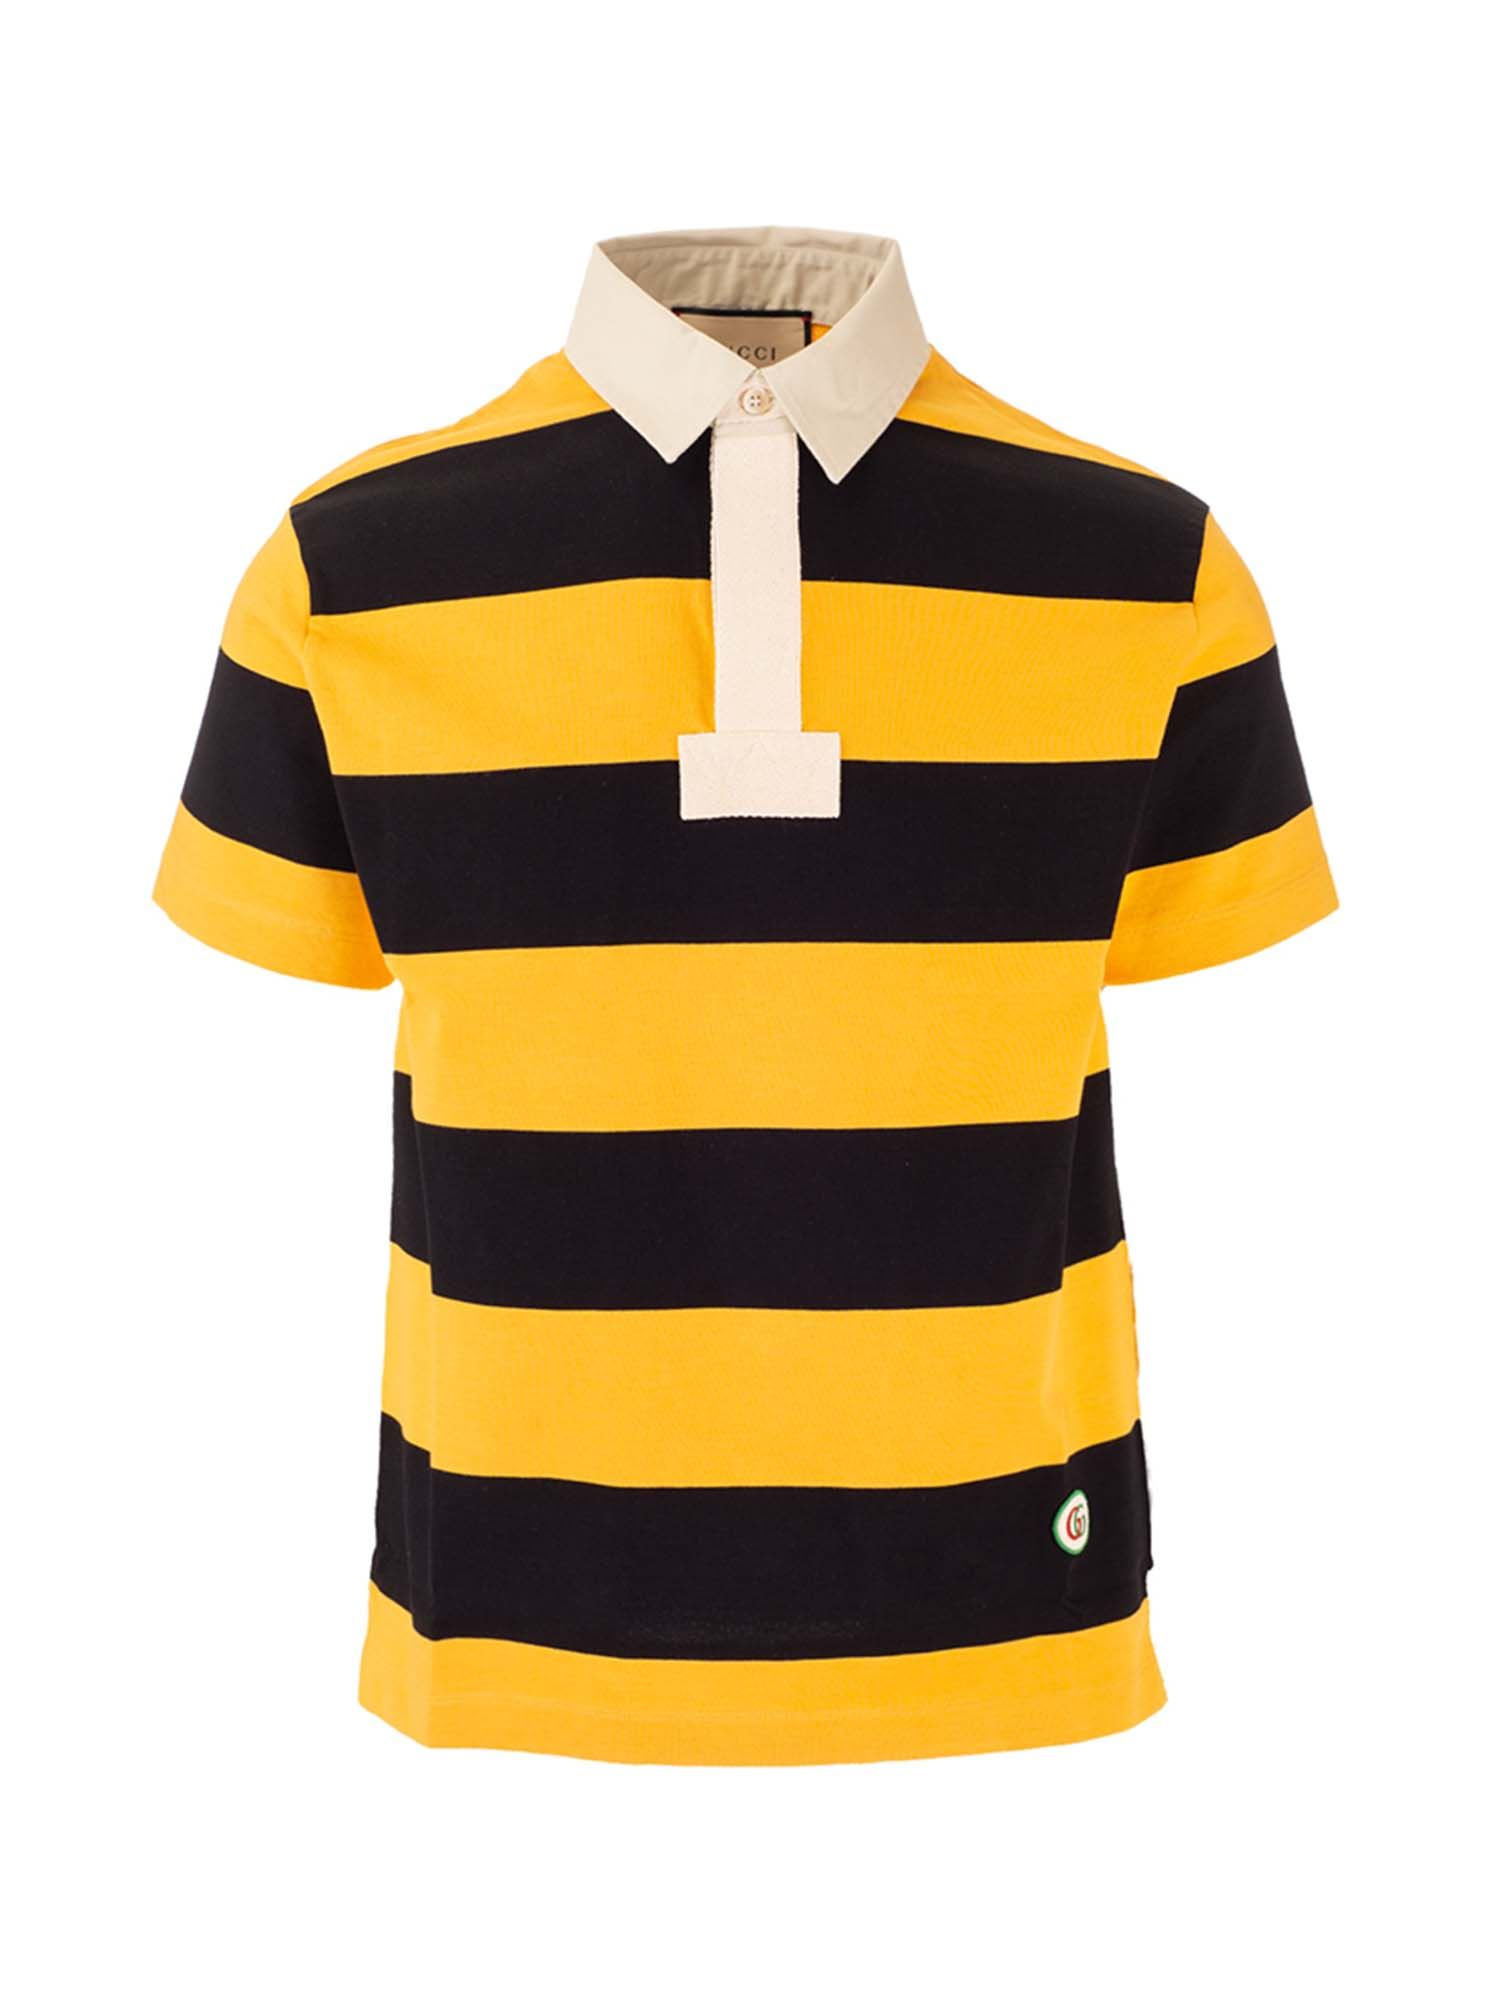 Gucci Cottons STRIPED POLO SHIRT IN YELLOW AND BLACK